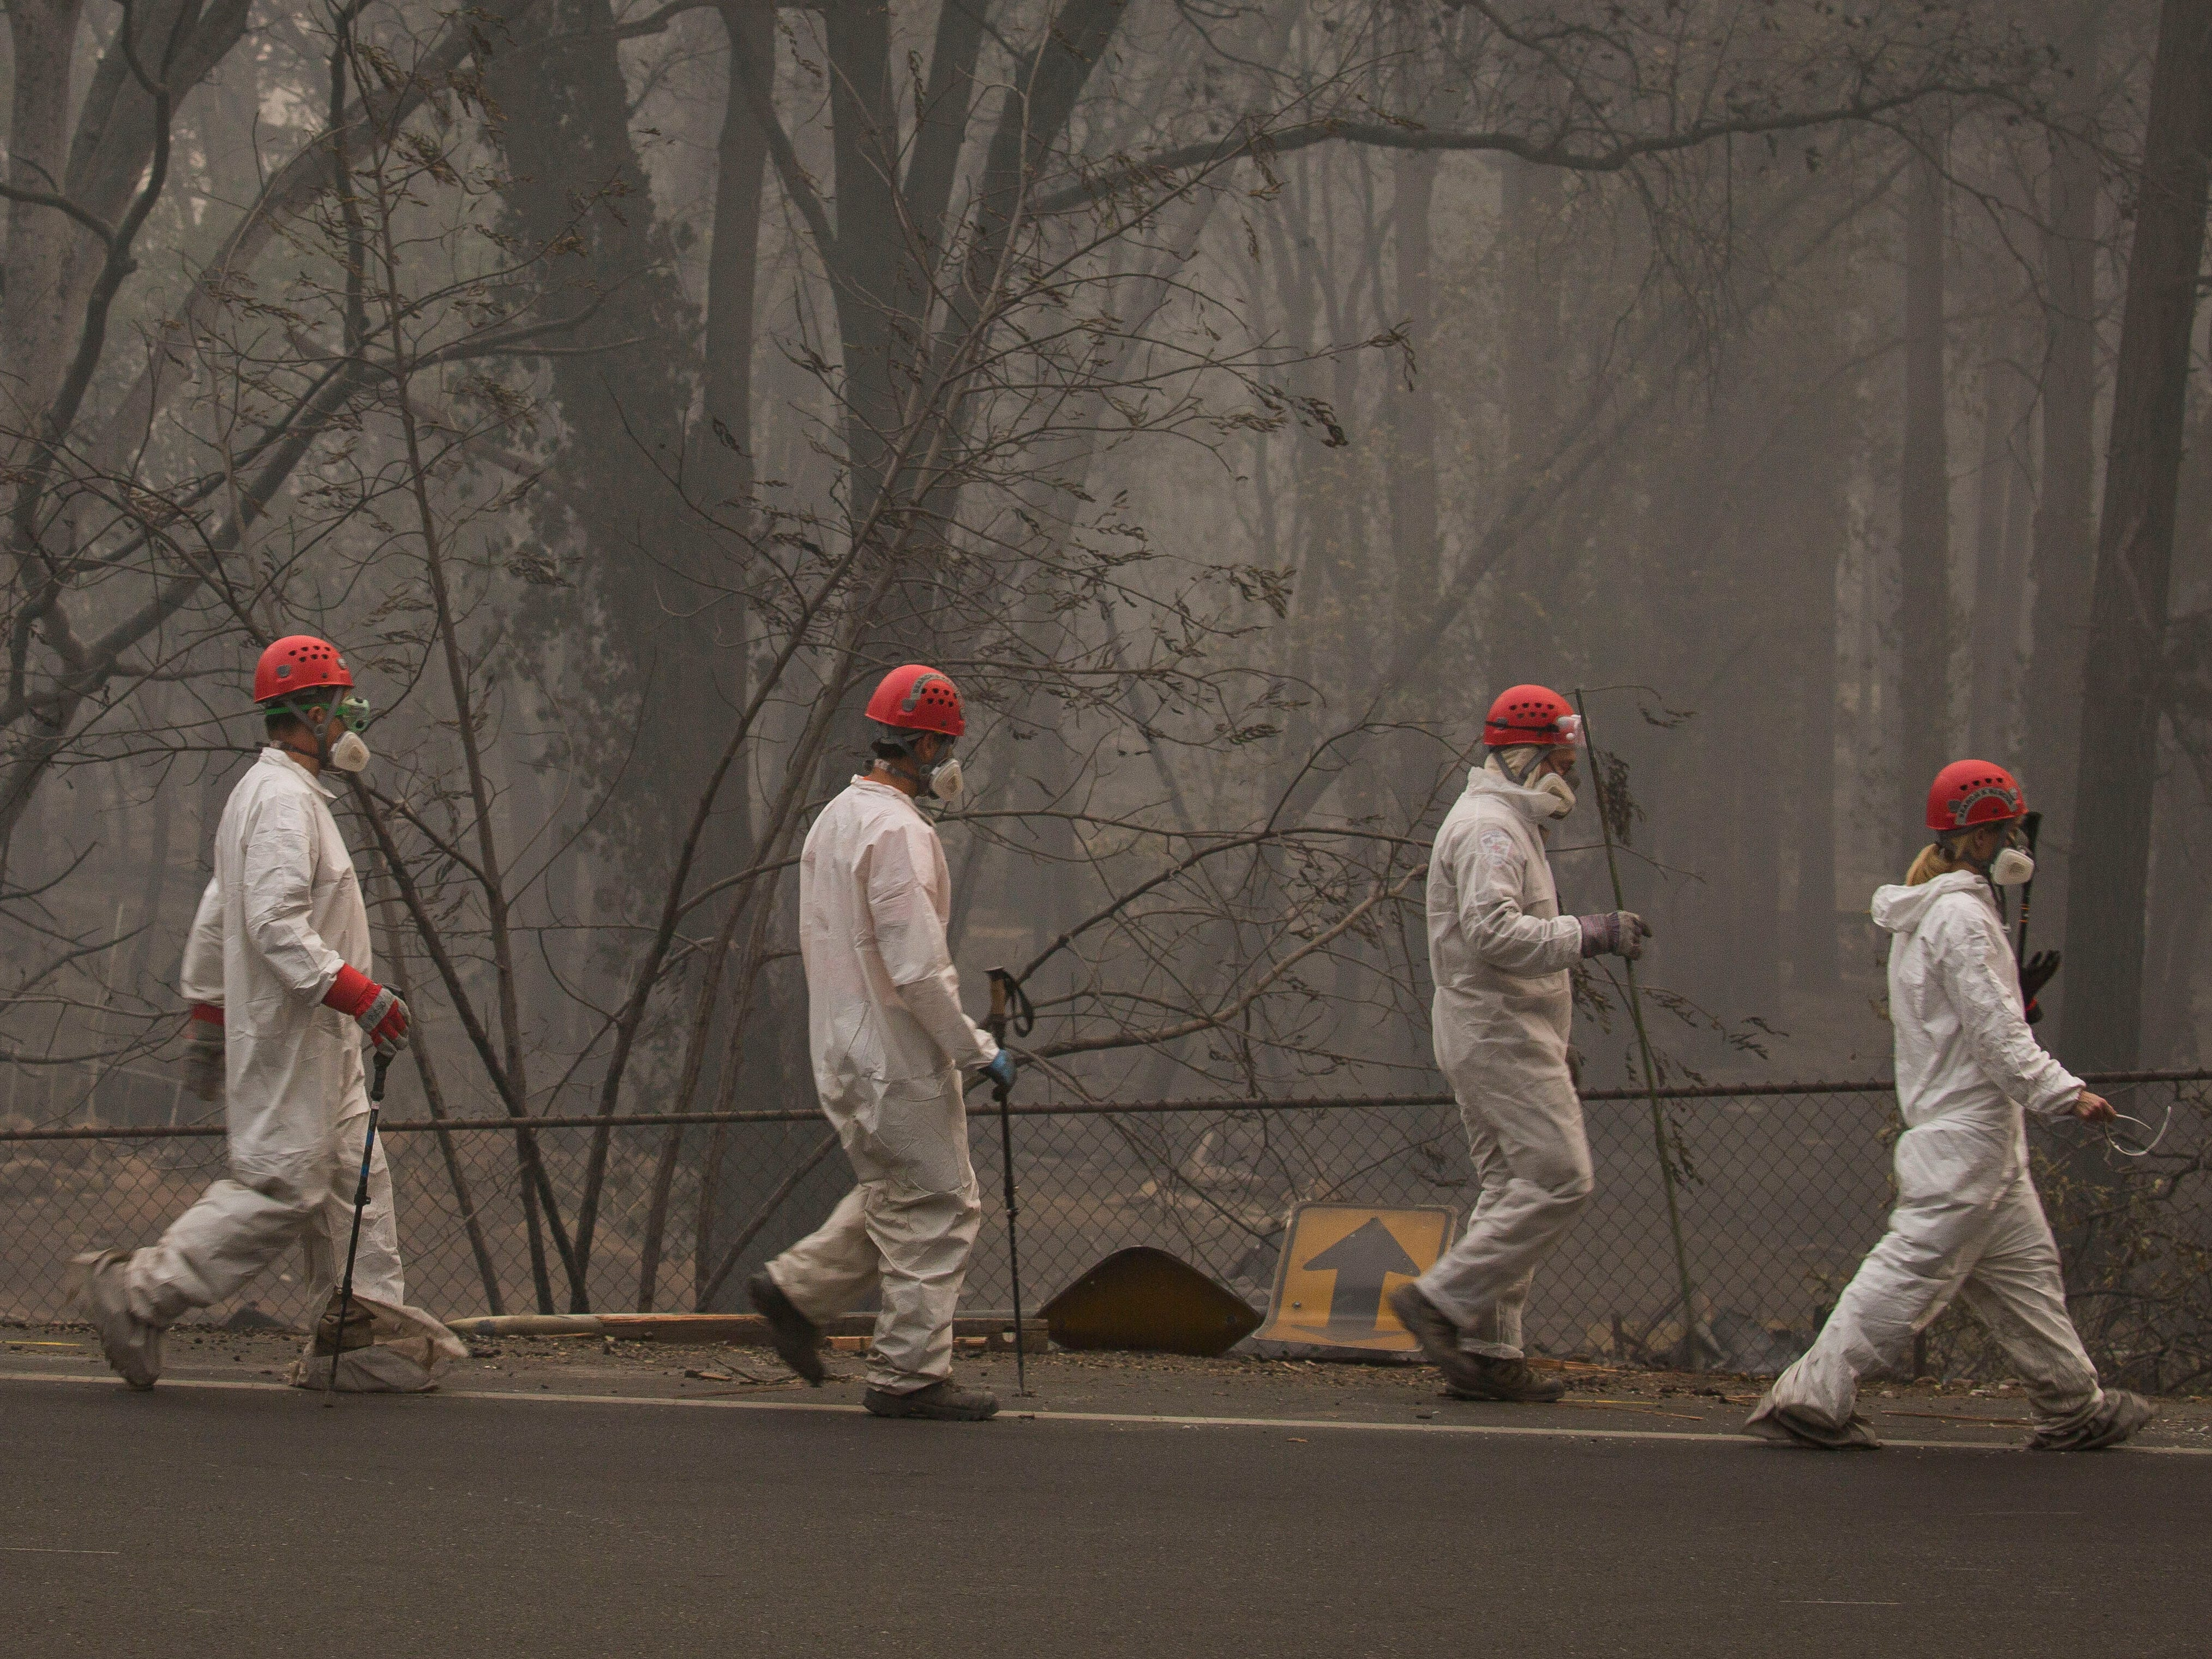 Search and rescue personnel walk to their next destination to comb through debris searching for remains in a neighborhood near Pentz Road in Paradise, Calif, after the Camp Fire devastated the area, Nov. 16, 2018.